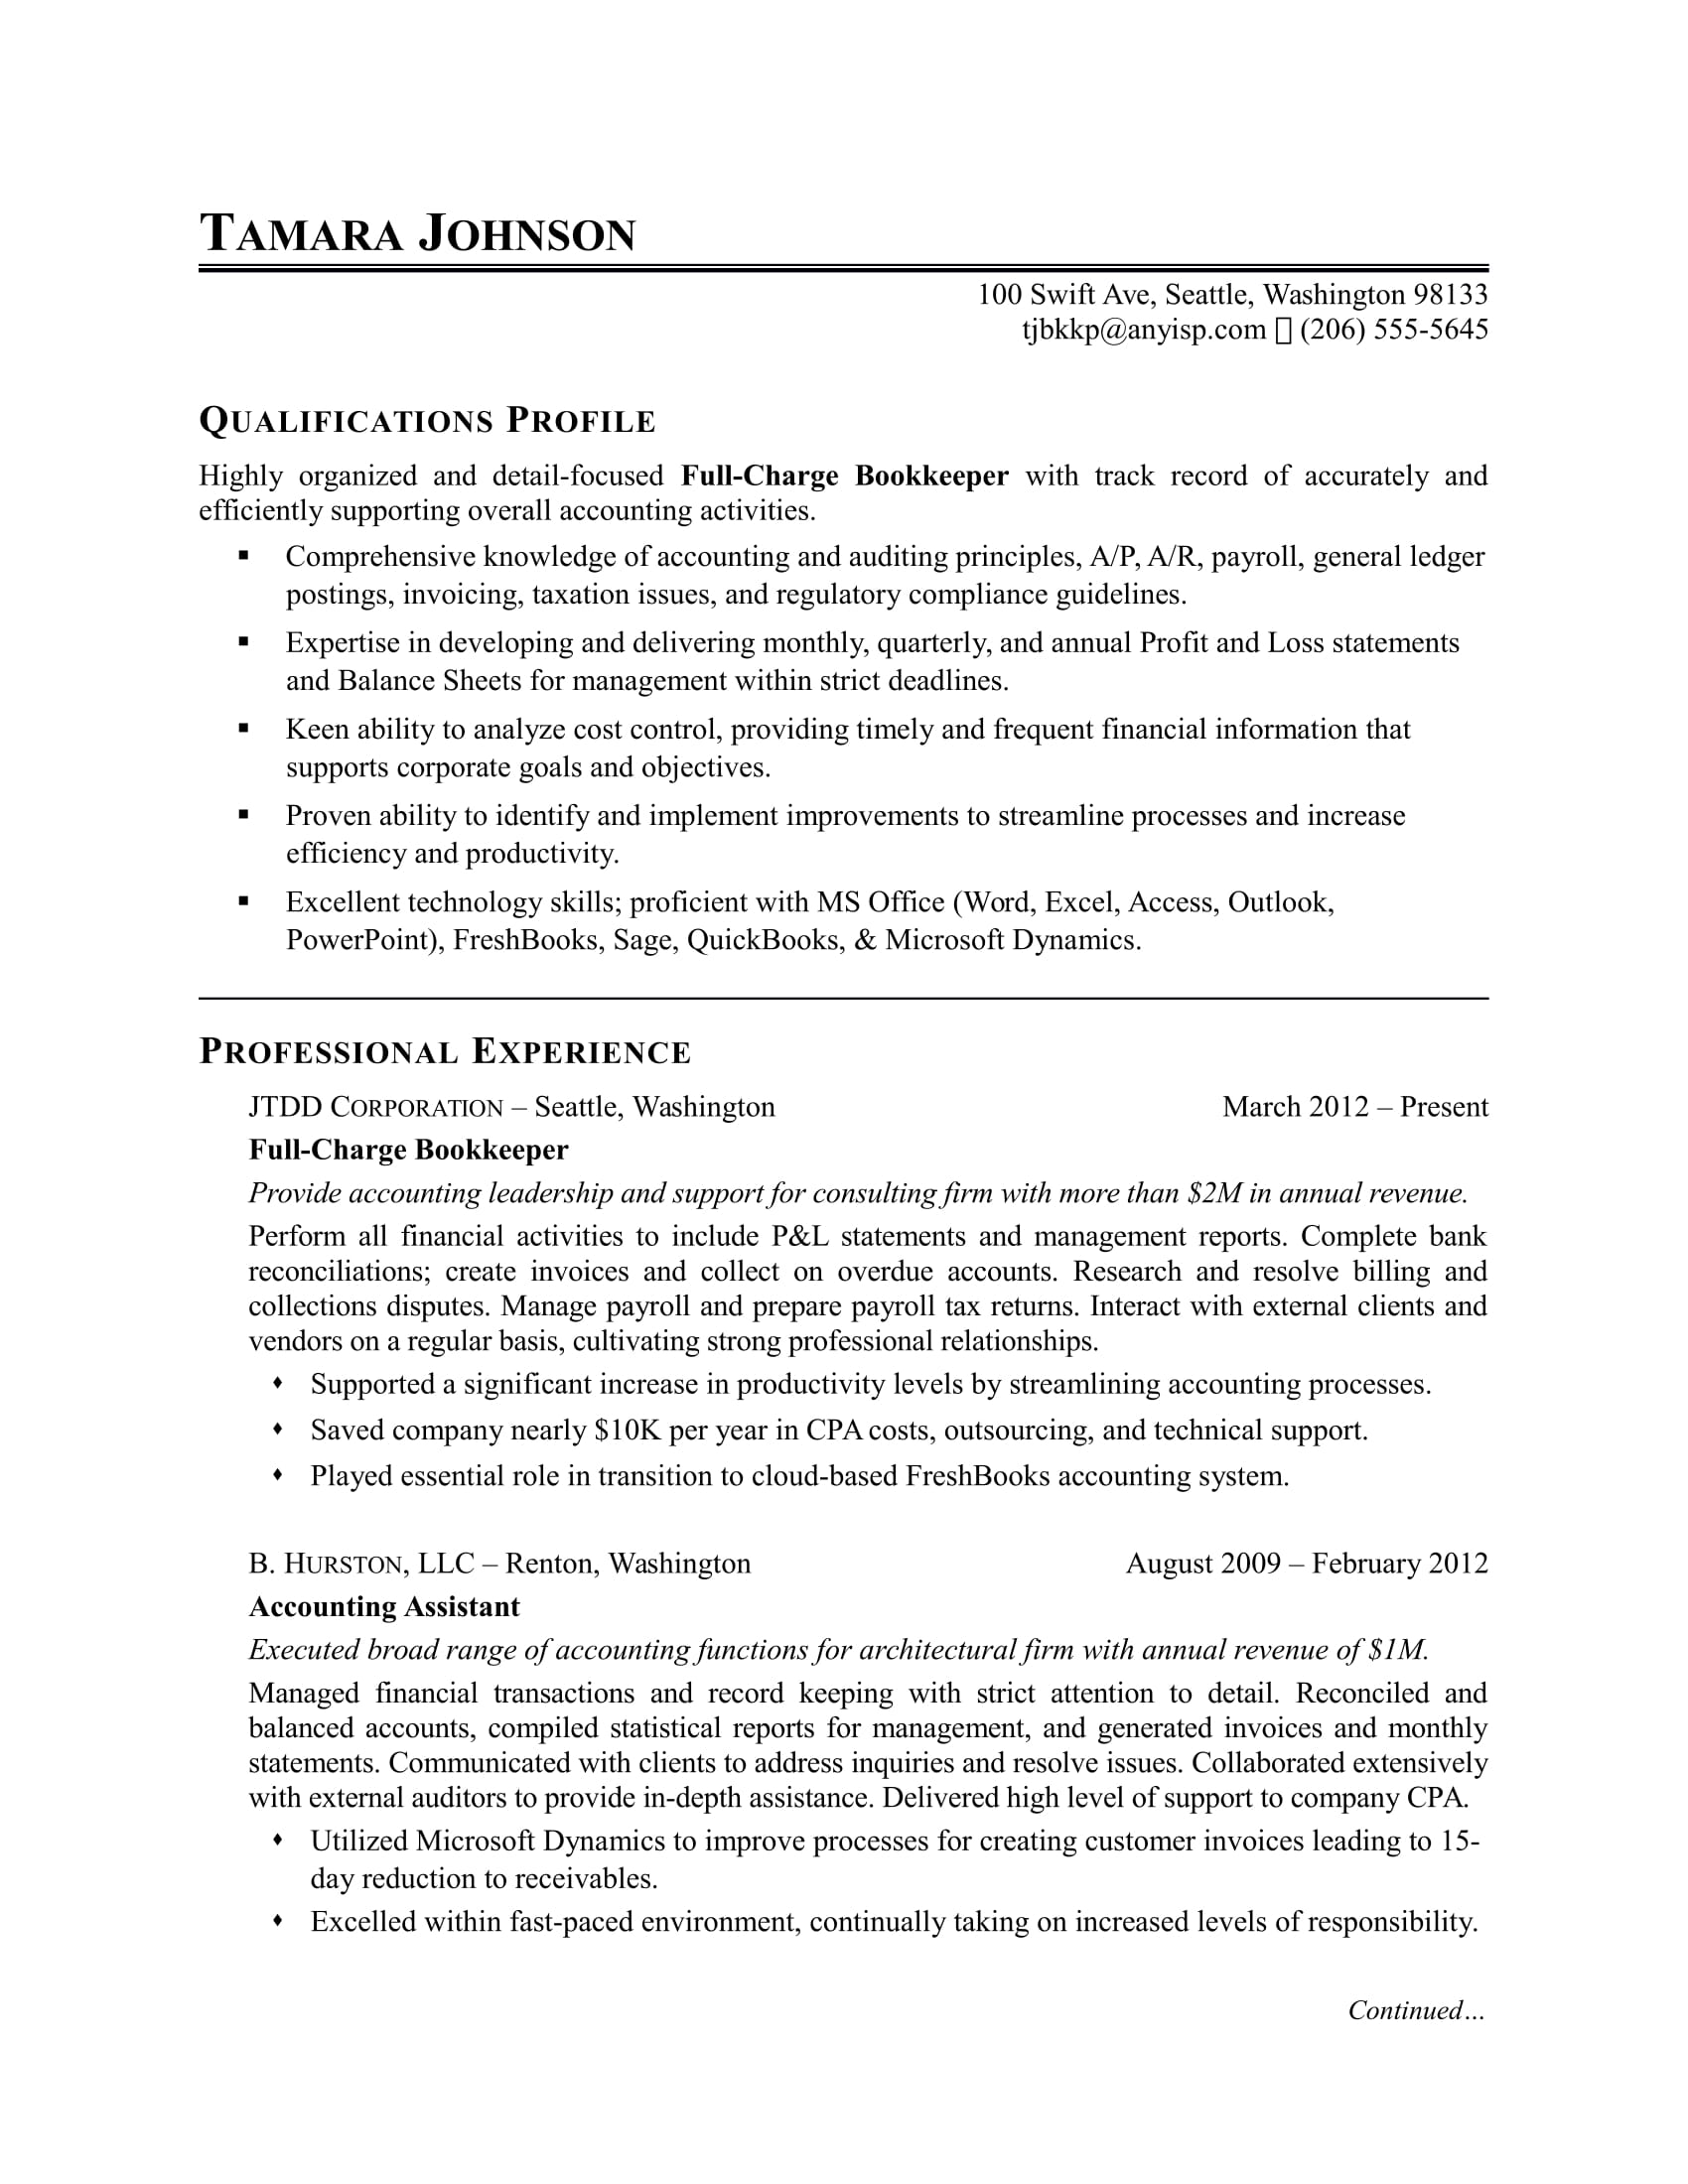 Bookkeeper resume sample for Cover letter for bookkeeper position with no experience